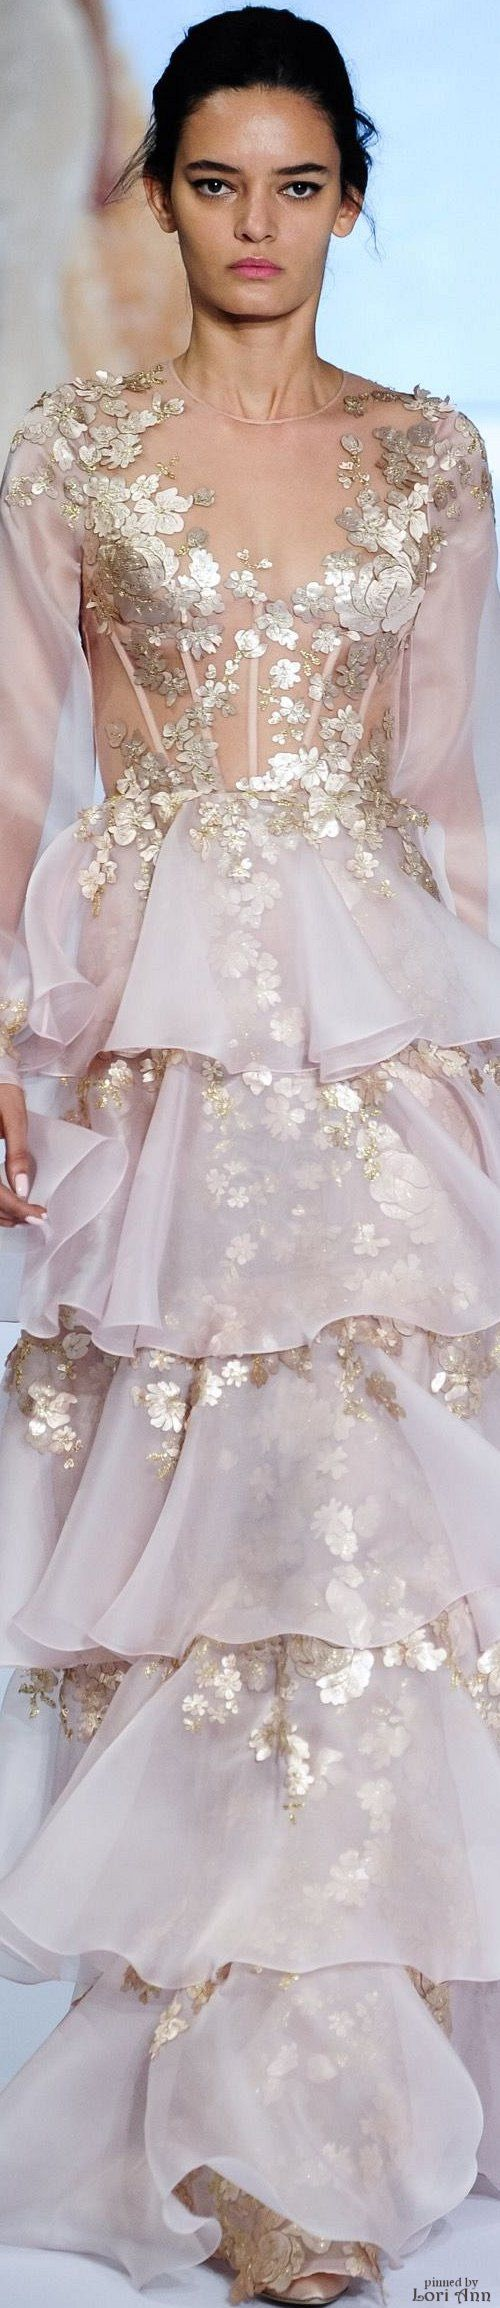 ℳiss Giana's Gorgeous Gowns ♛ ♛    Poppy Pea   Spring 2016 Haute Couture Ralph & Russo                                                                                                                                                                                 More